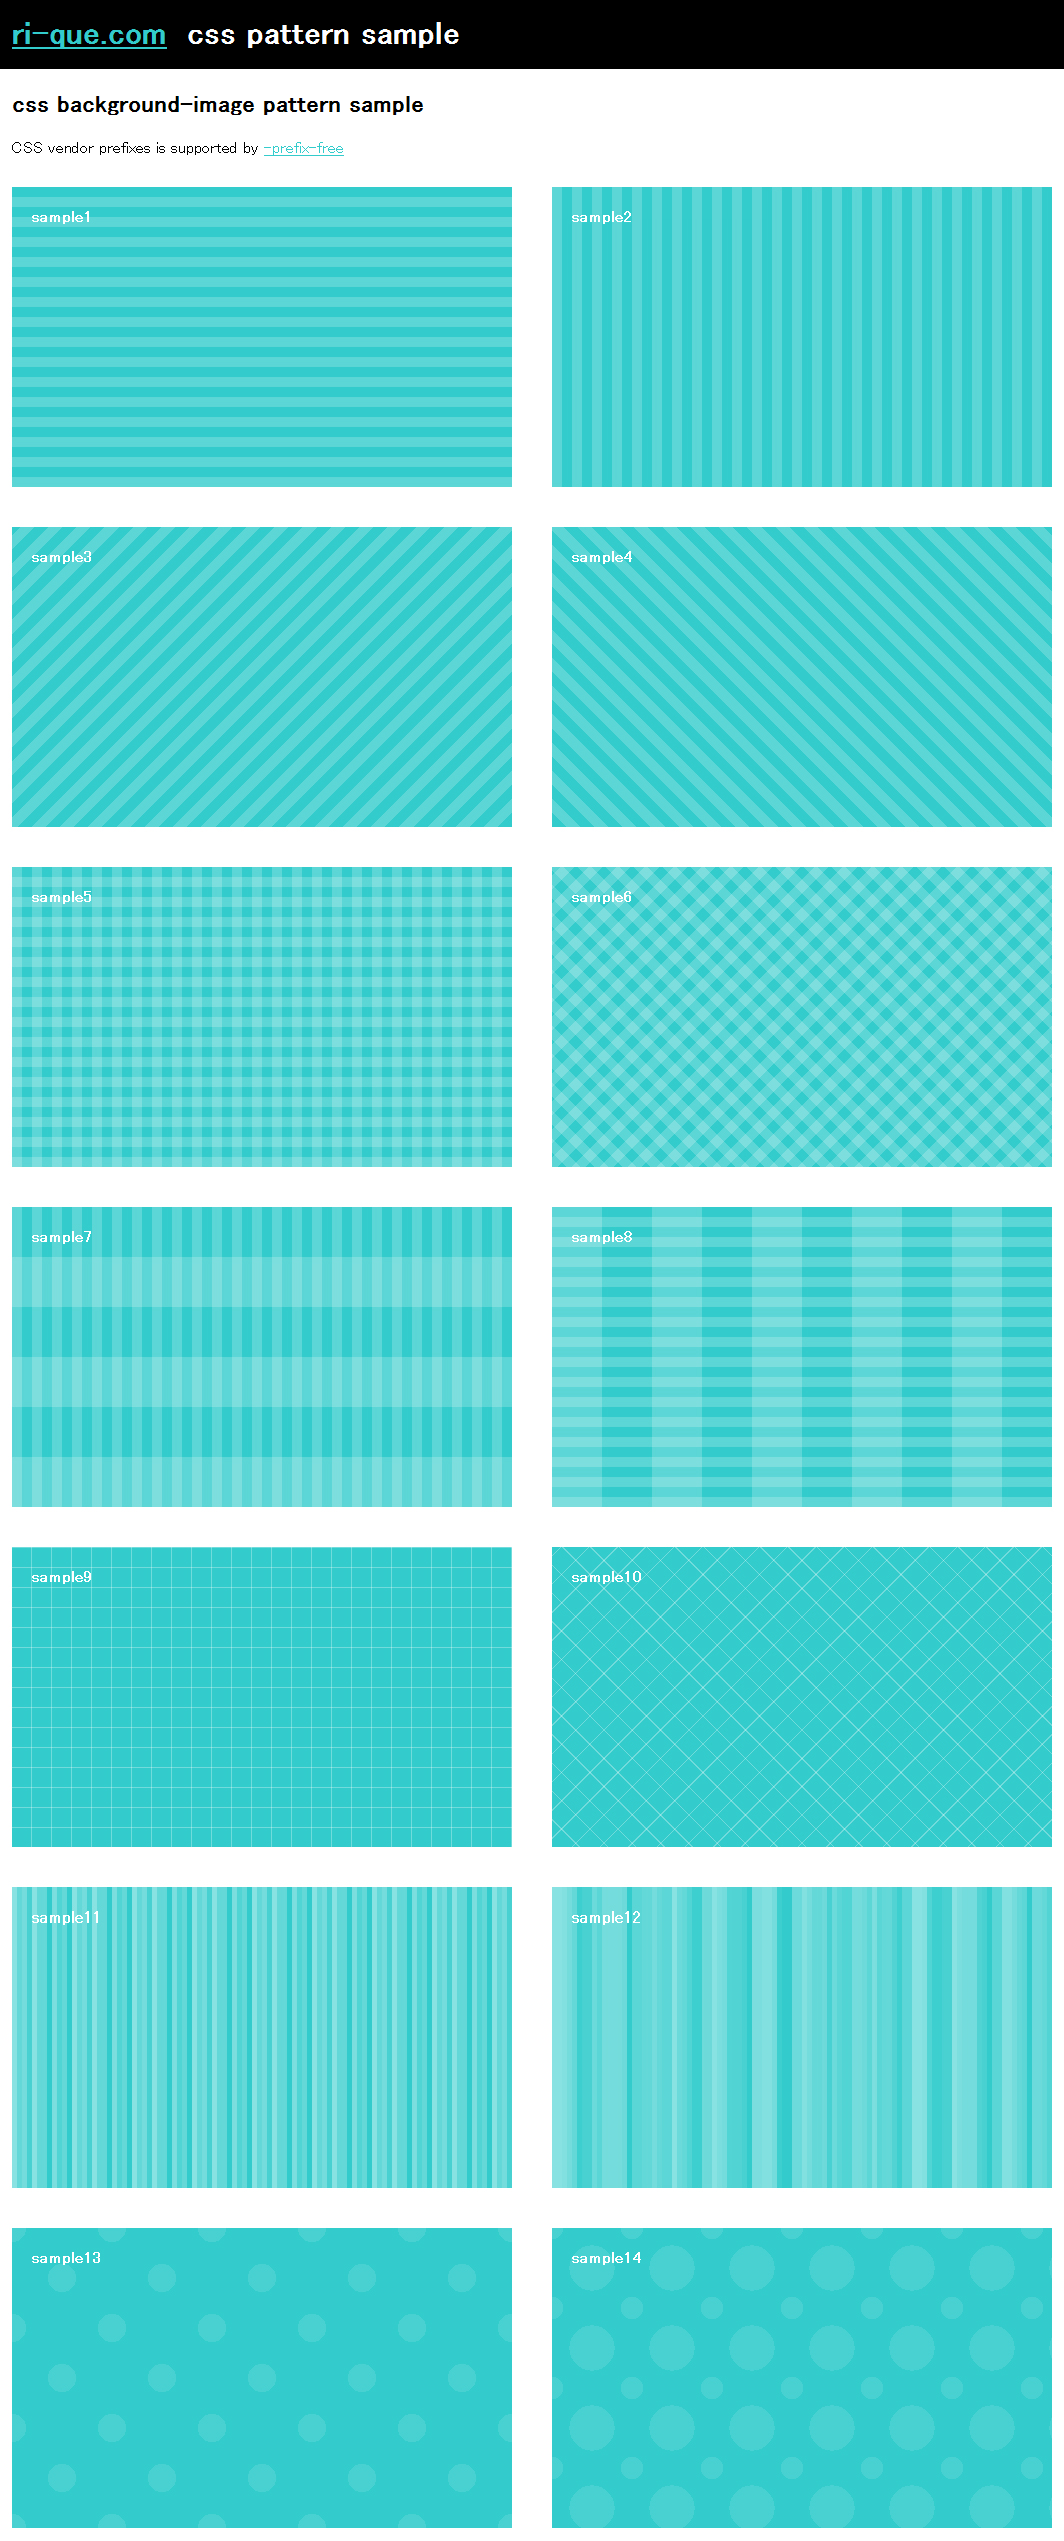 css-pattern-sample